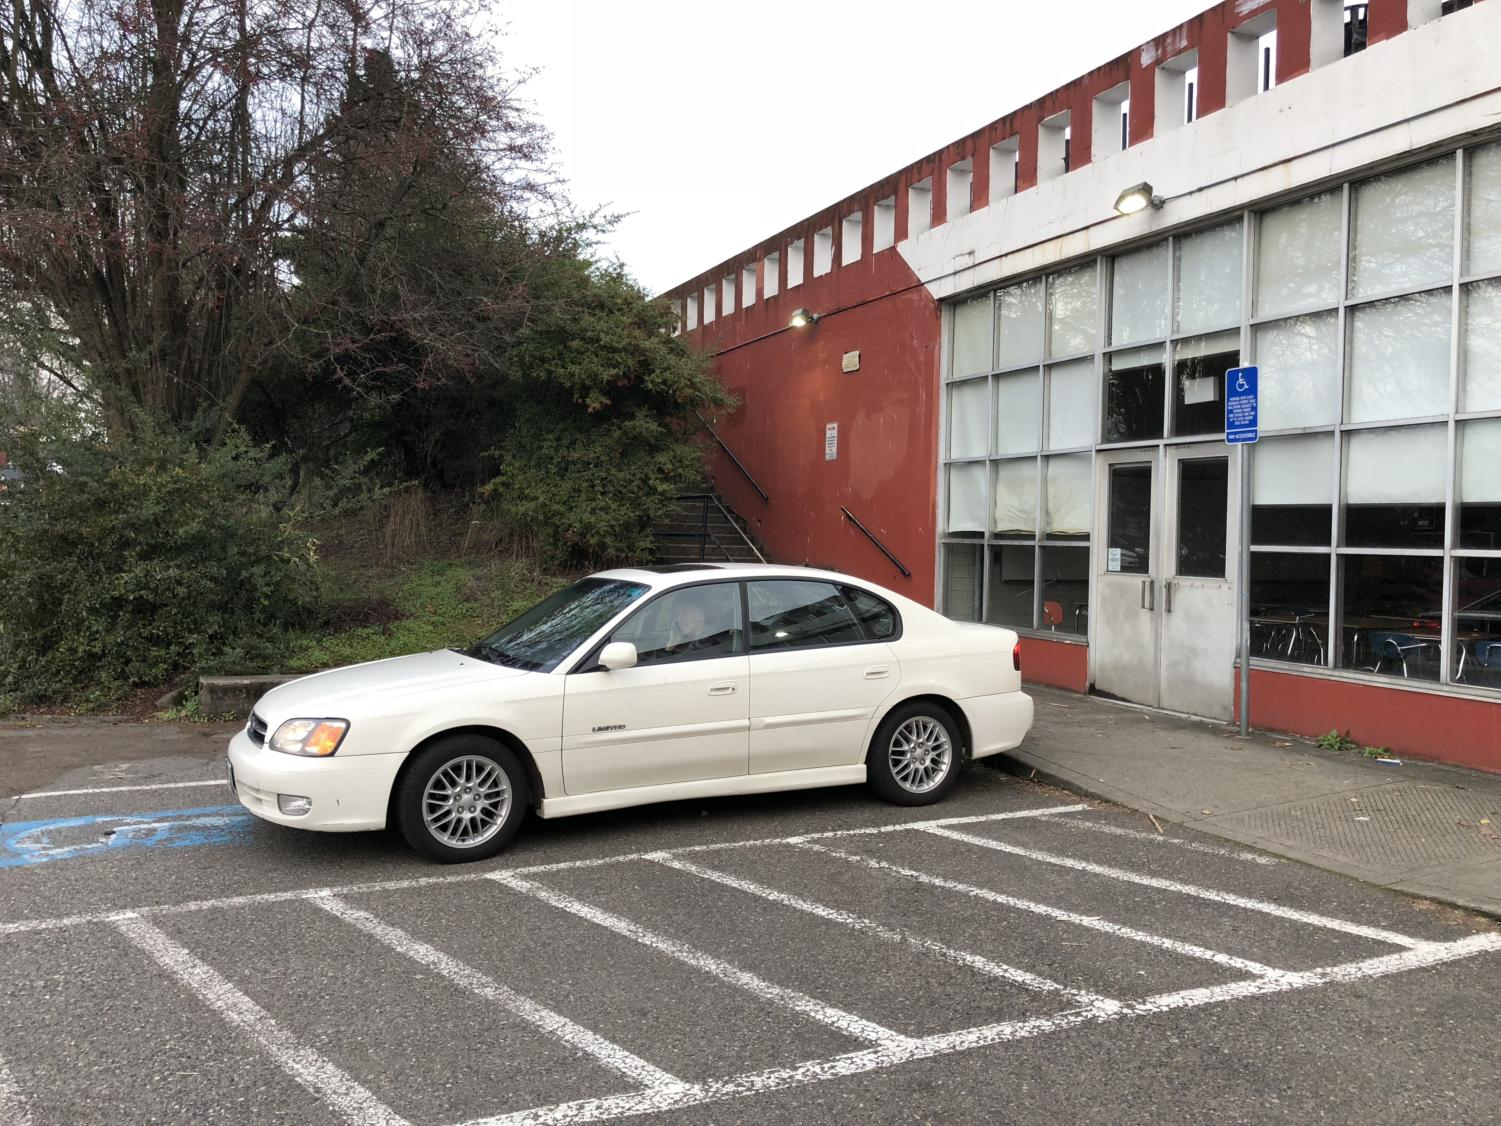 A car without a permit sits parked in a handicap spot outside of the cafeteria. According to PPS district policy, all handicap spots on campus are designated for staff with handicap passes and visitors, not students with a disability.